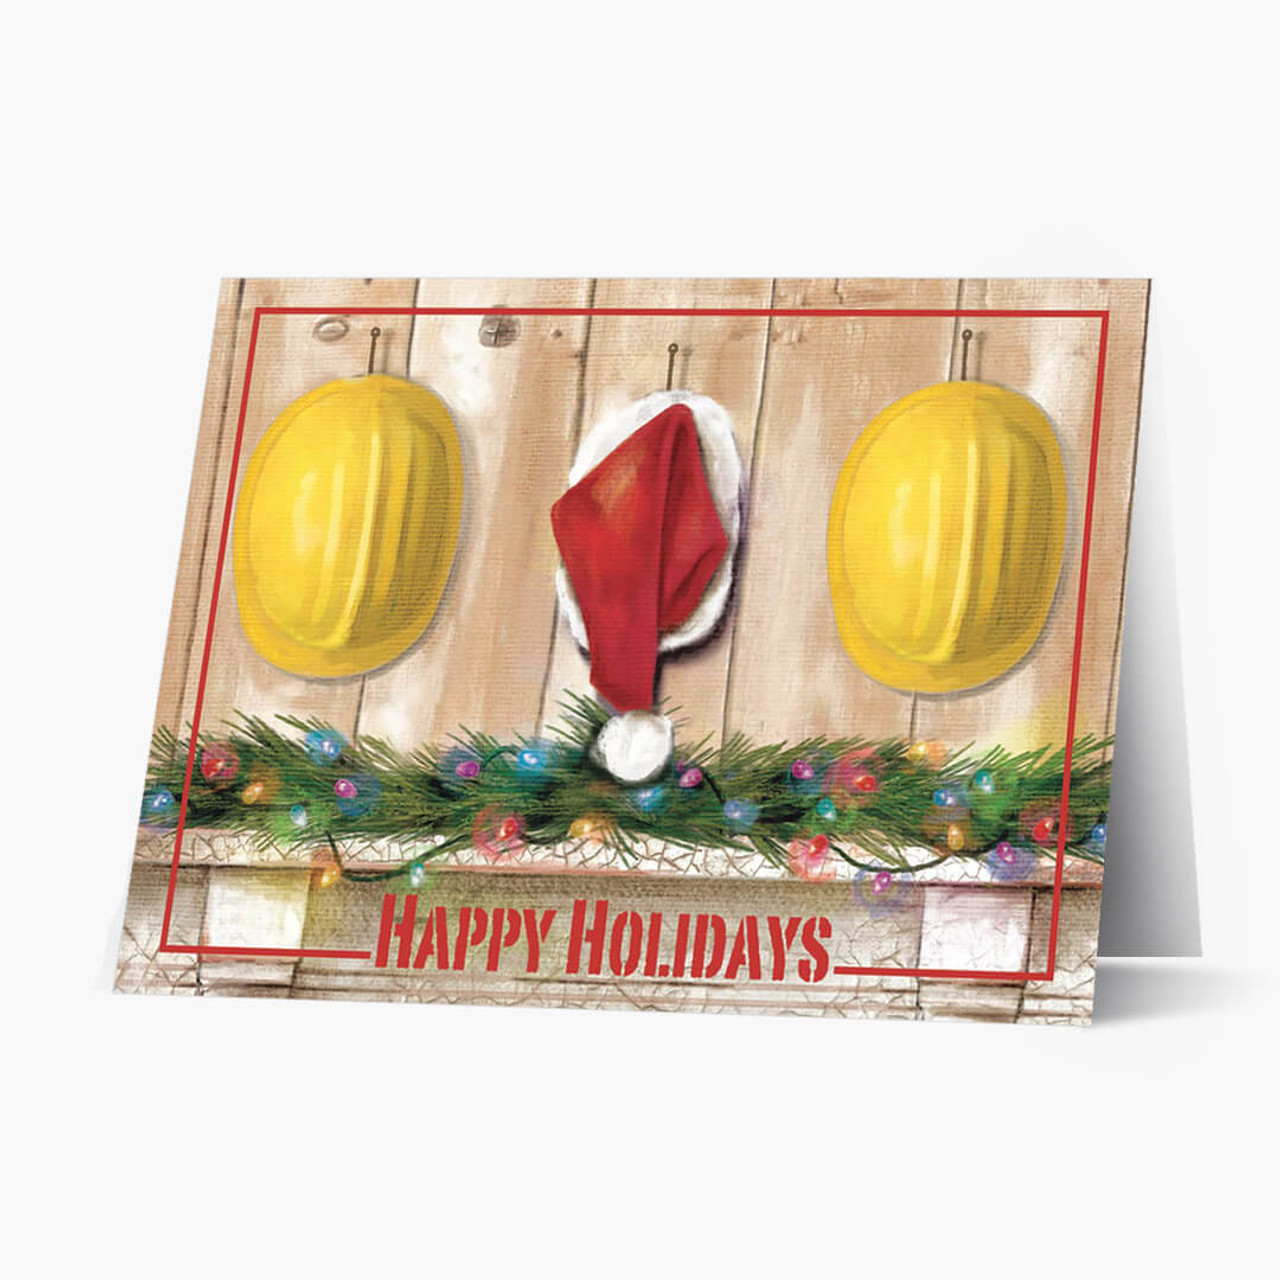 Construction Hats Christmas Card